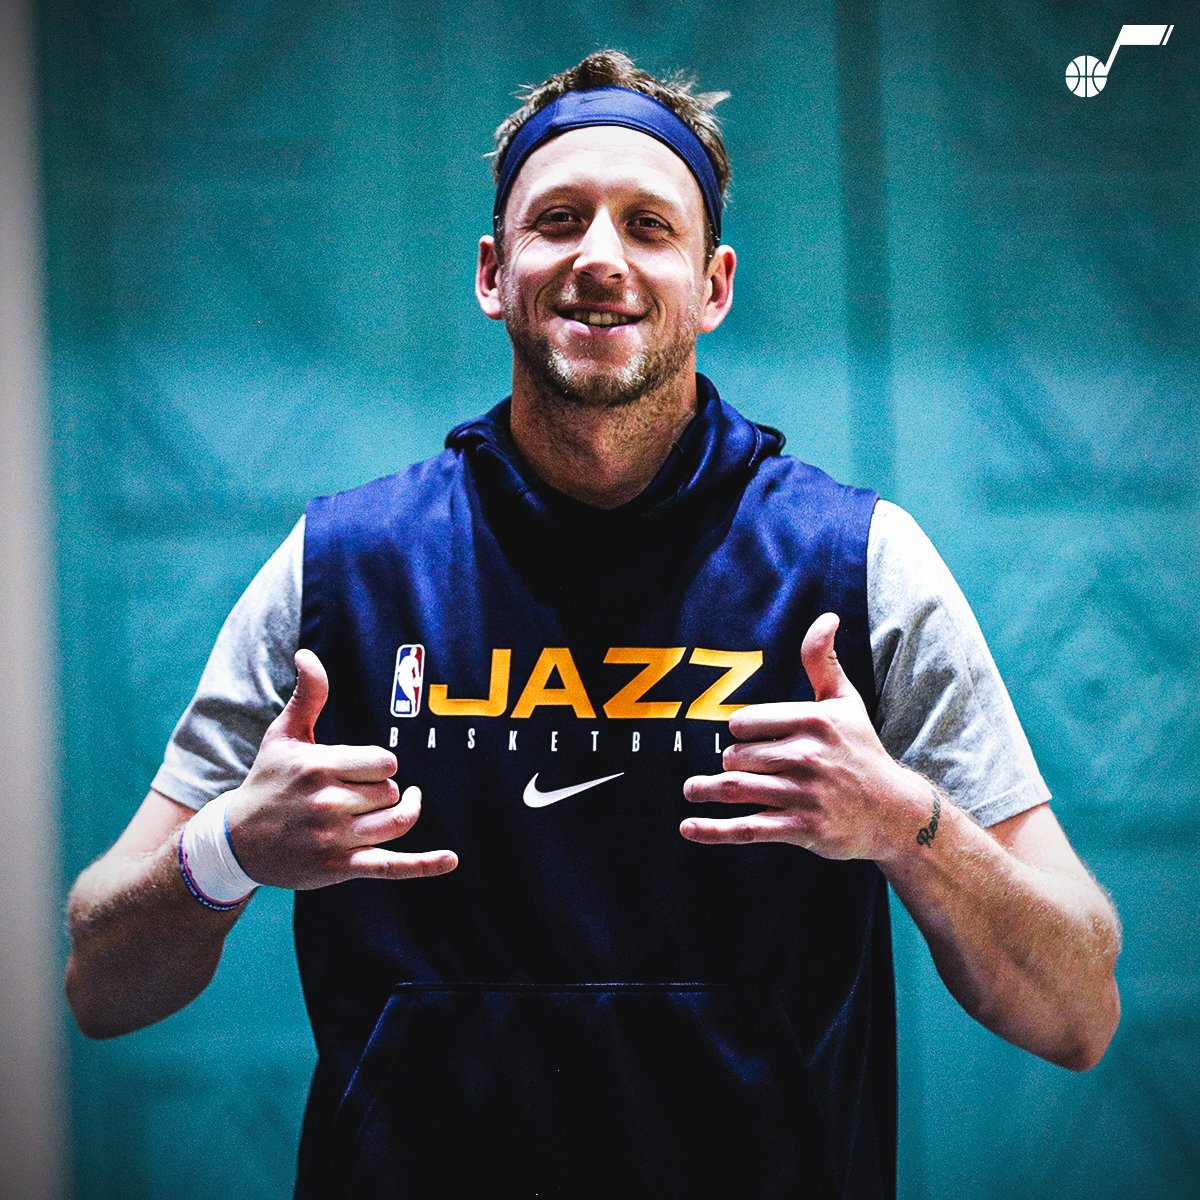 Who's ready for the NBA Playoffs? 🤙  50% off subscriptions for a short time: https://t.co/O4RdSBOb6o    #AussieHoops #TakeNote #NBA https://t.co/DO2FtrSqzT